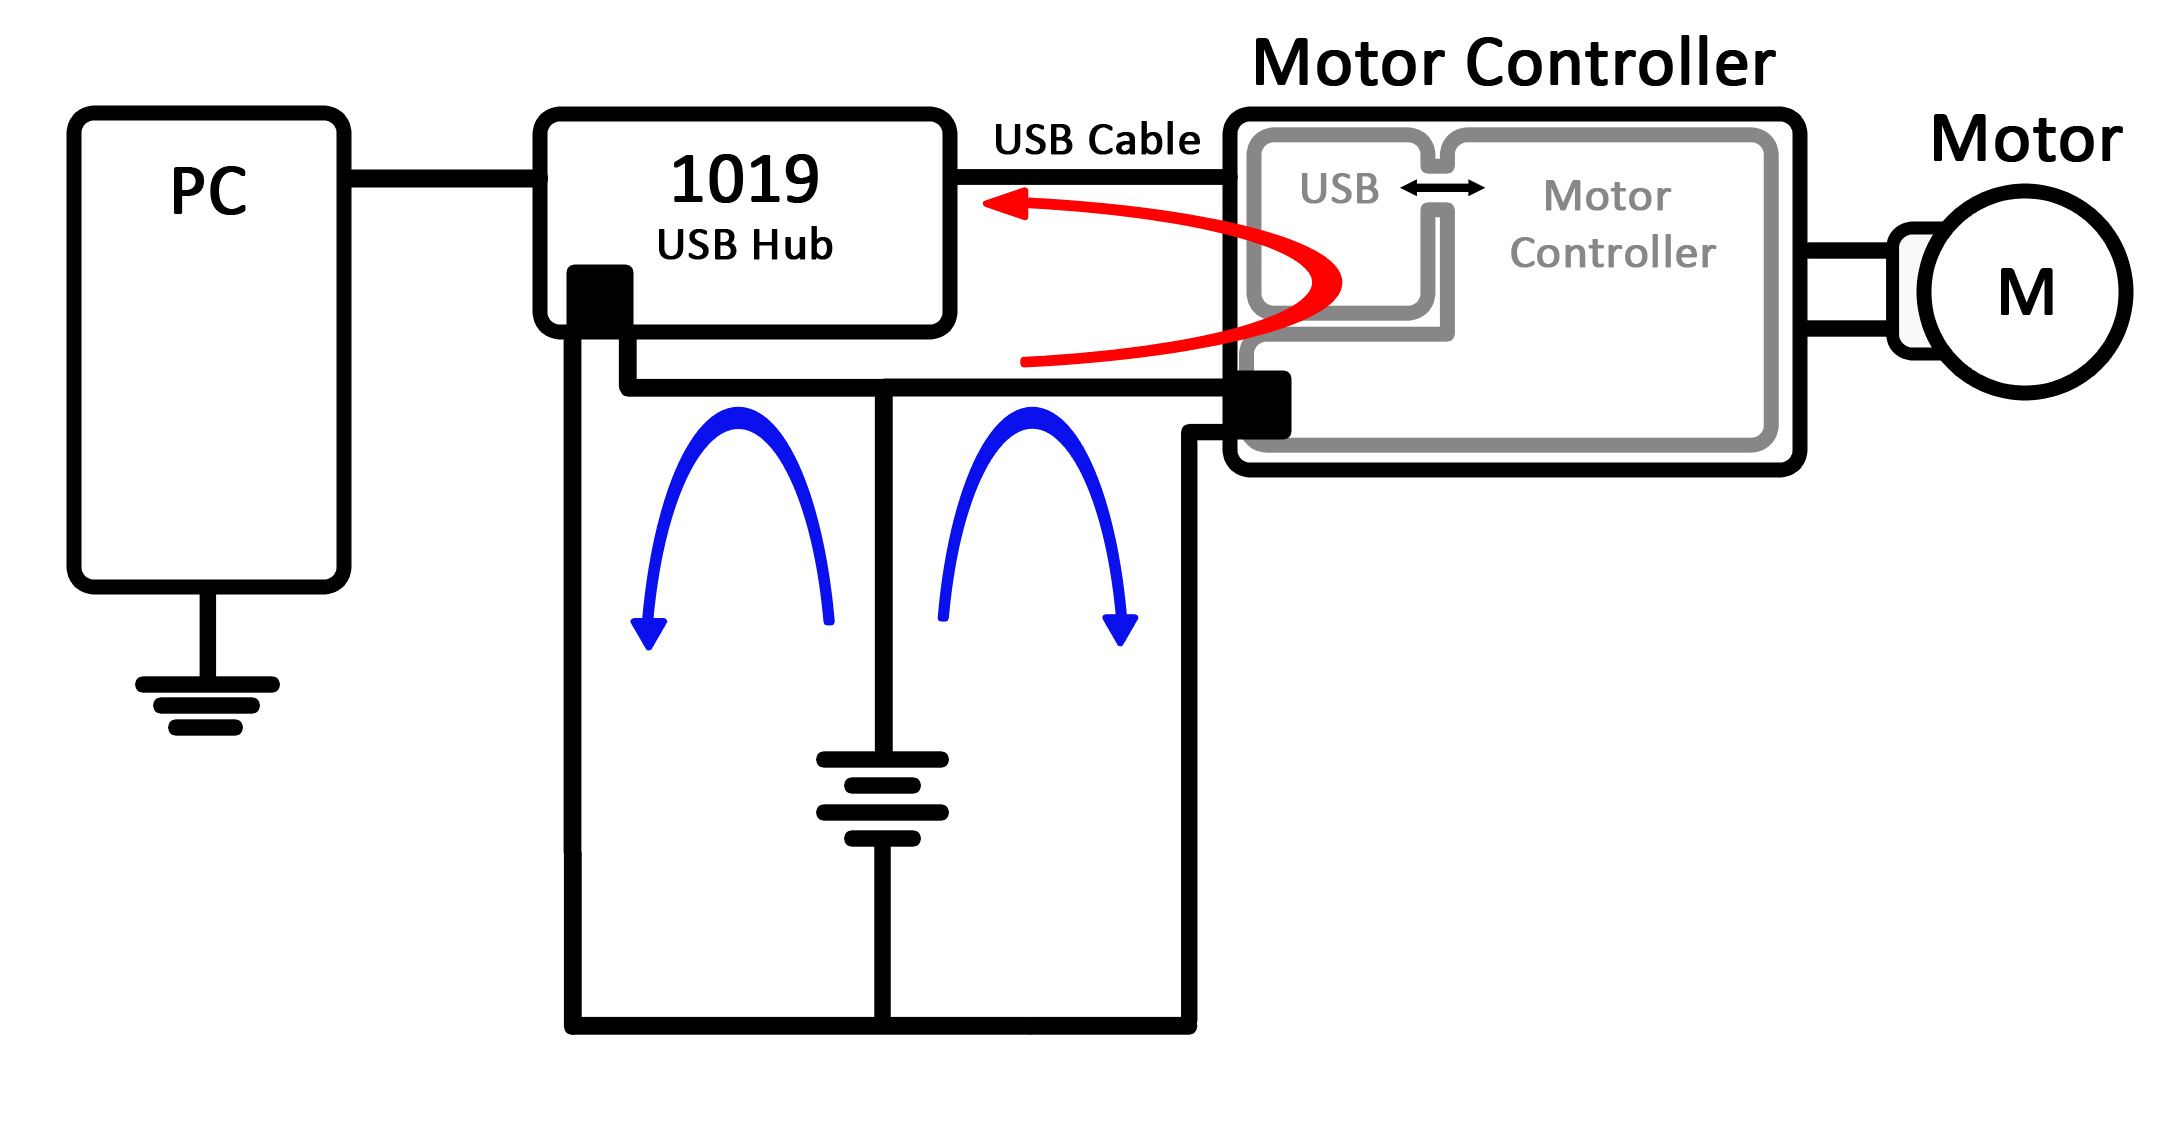 How To Destroy A Motor Controller Phidgets Control Circuit Diagram Together With Load Cell Circuit2 In This